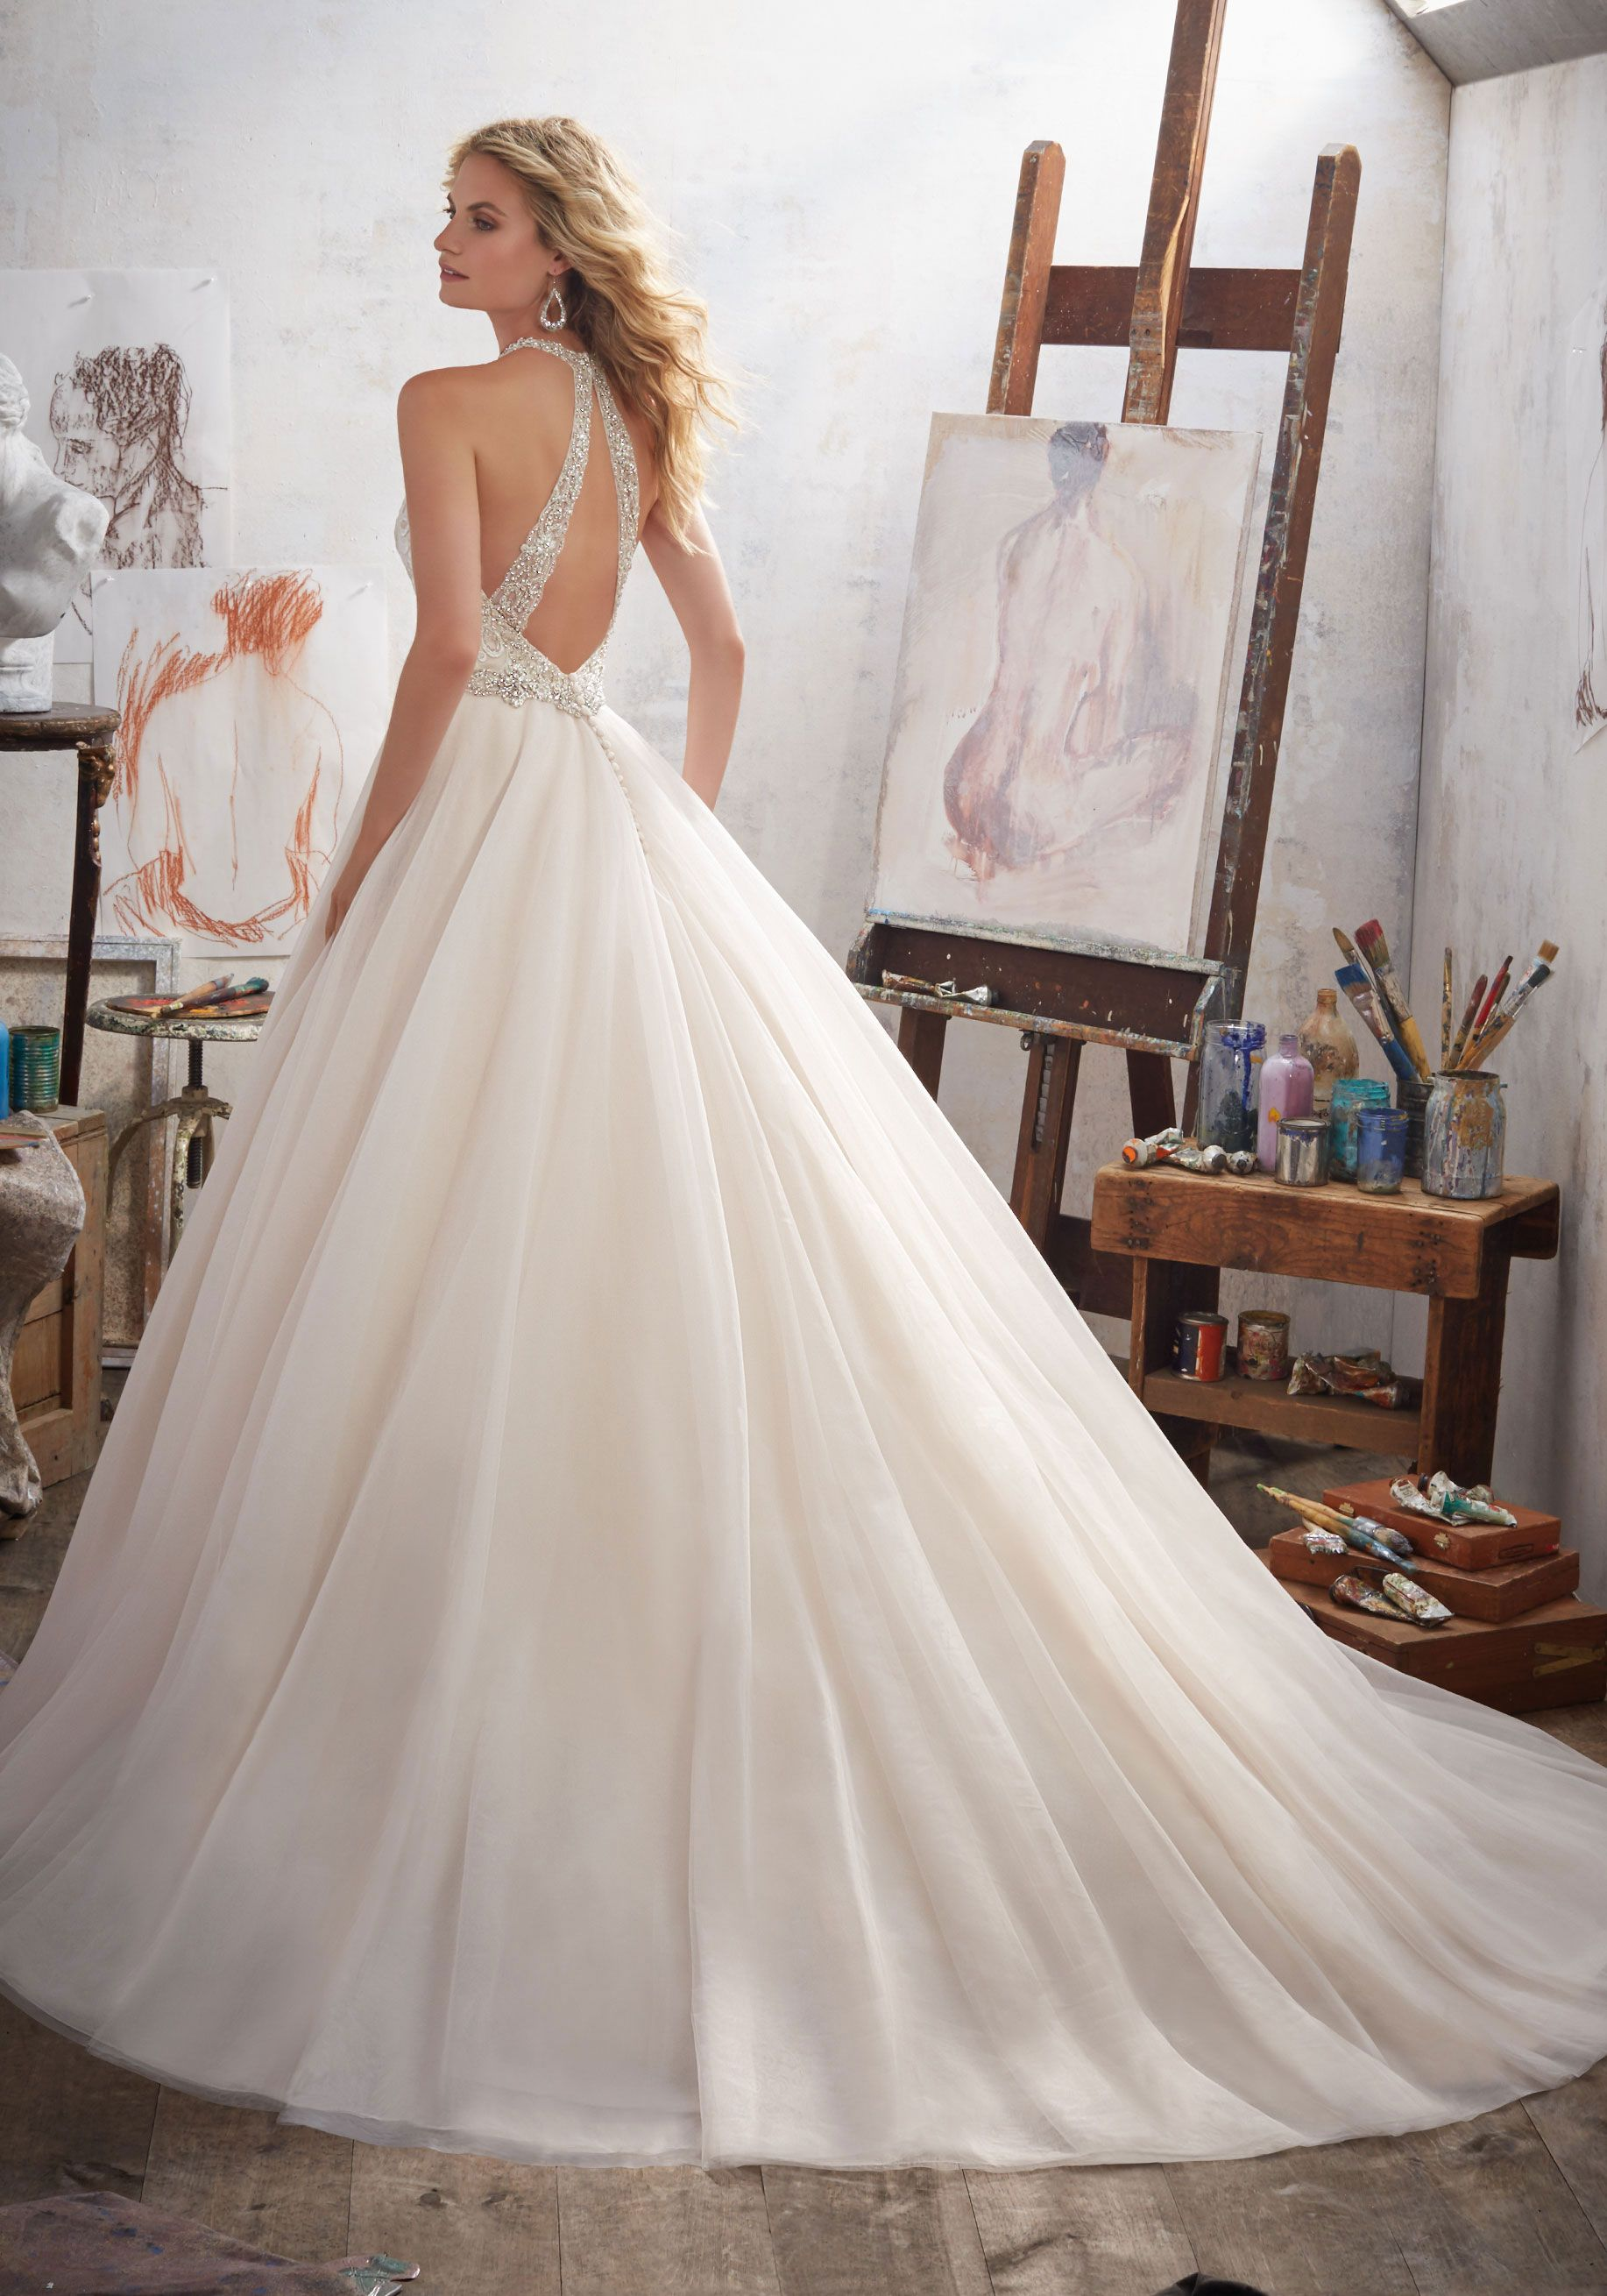 Margarita wedding dress by Morilee